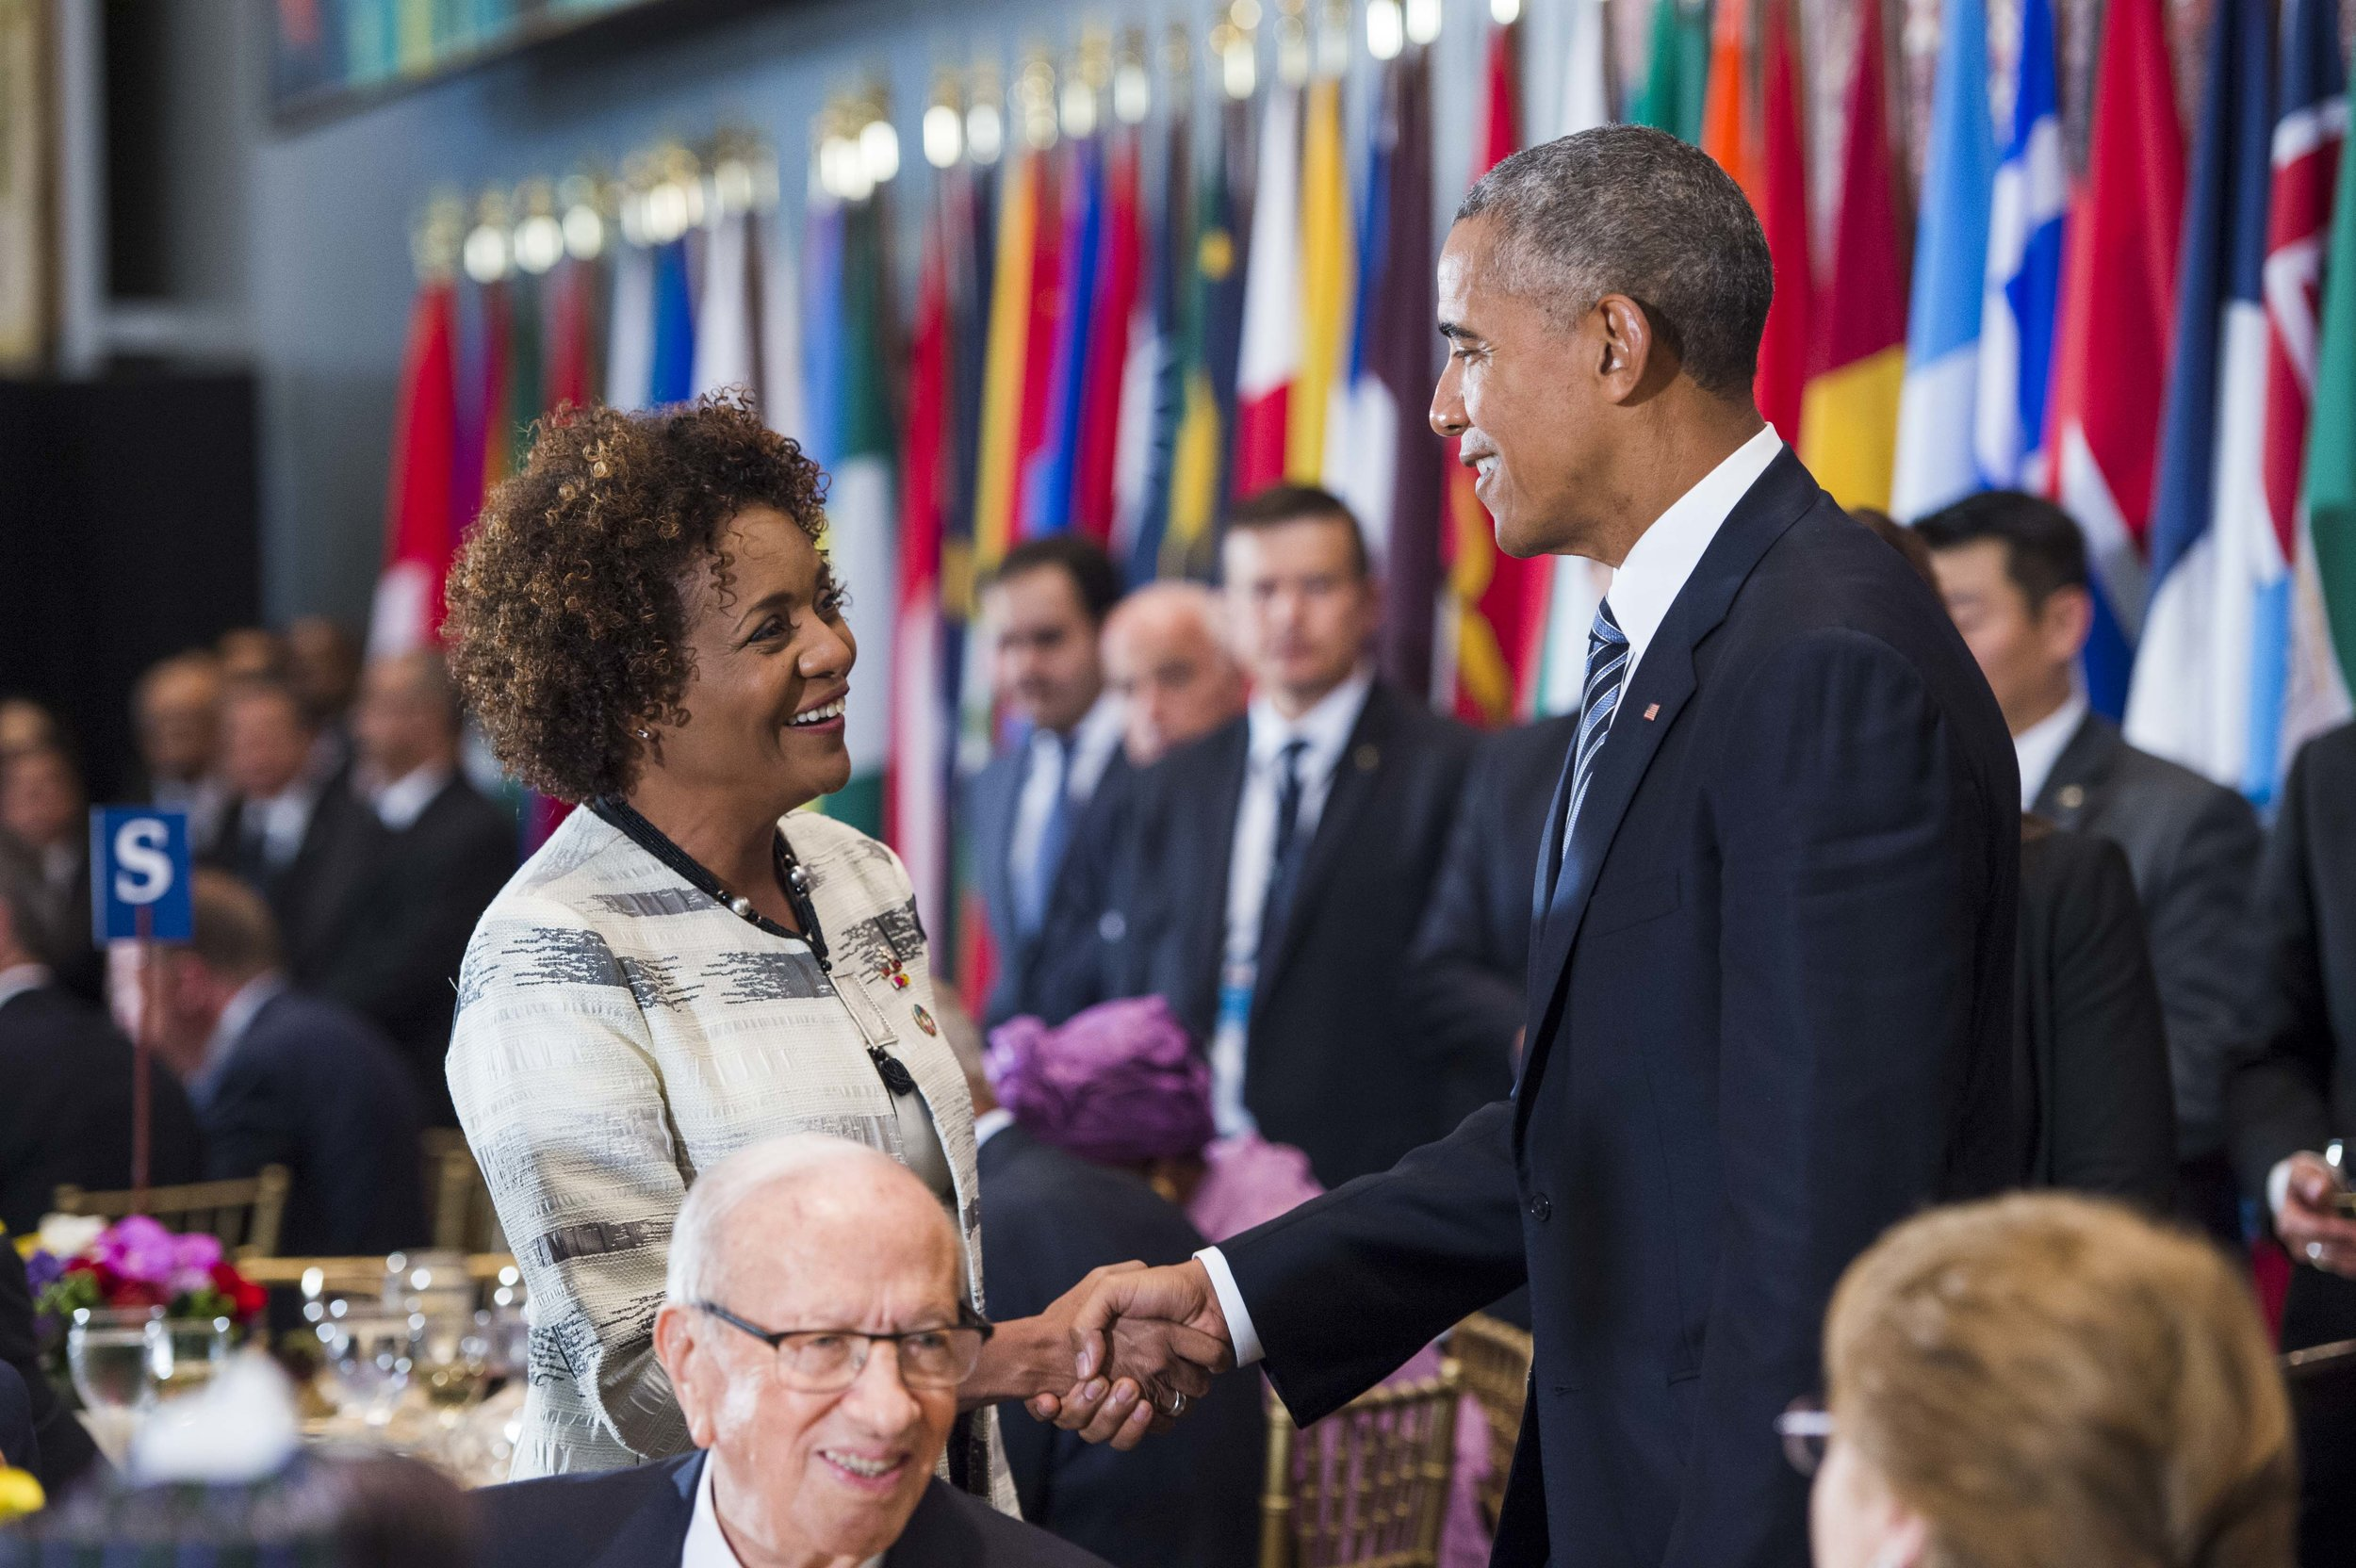 Headquarters of the United Nations, New York City, September 20, 2016 — The President of the United States of America, Mr. Barack Obama, shakes hands with the Secretary General of La Francophonie, Her Excellency the Right Honourable Michaëlle Jean, at the State Luncheon for the Heads of Delegation to the seventy-first session of the UN General Assembly, hosted by the Secretary-General of the United Nations.